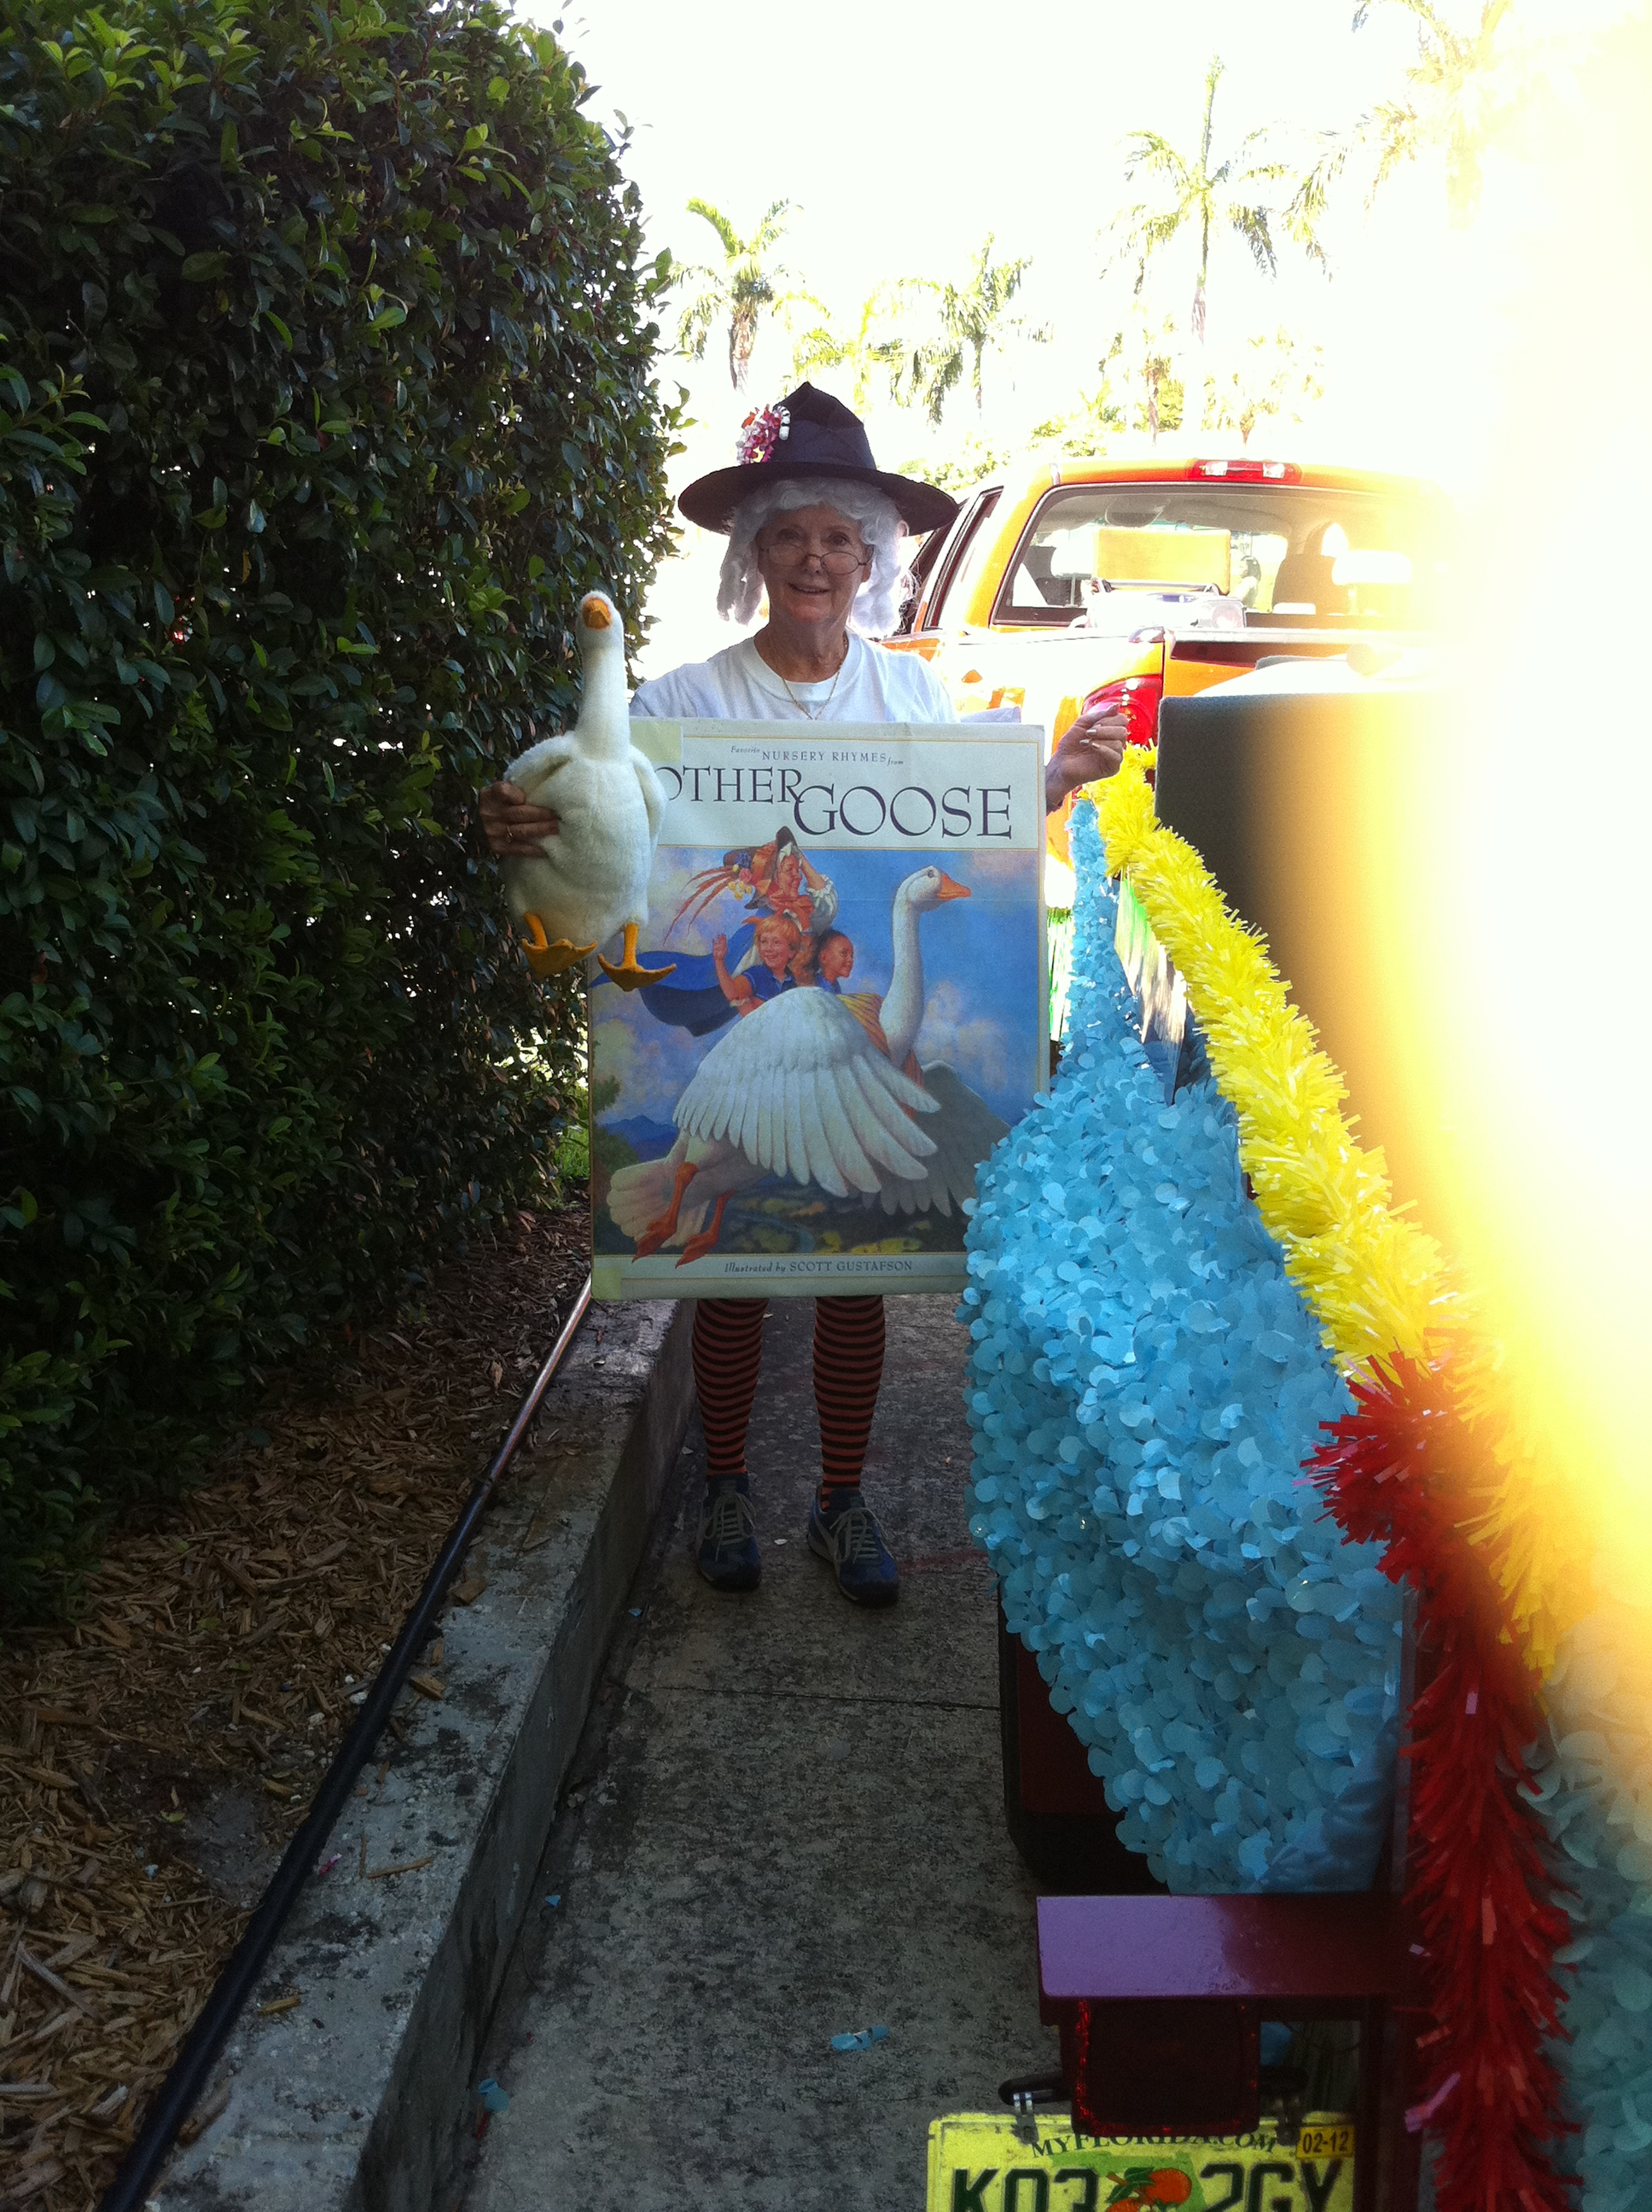 Participant dressed as a Mother Goose book holding a stuffed goose